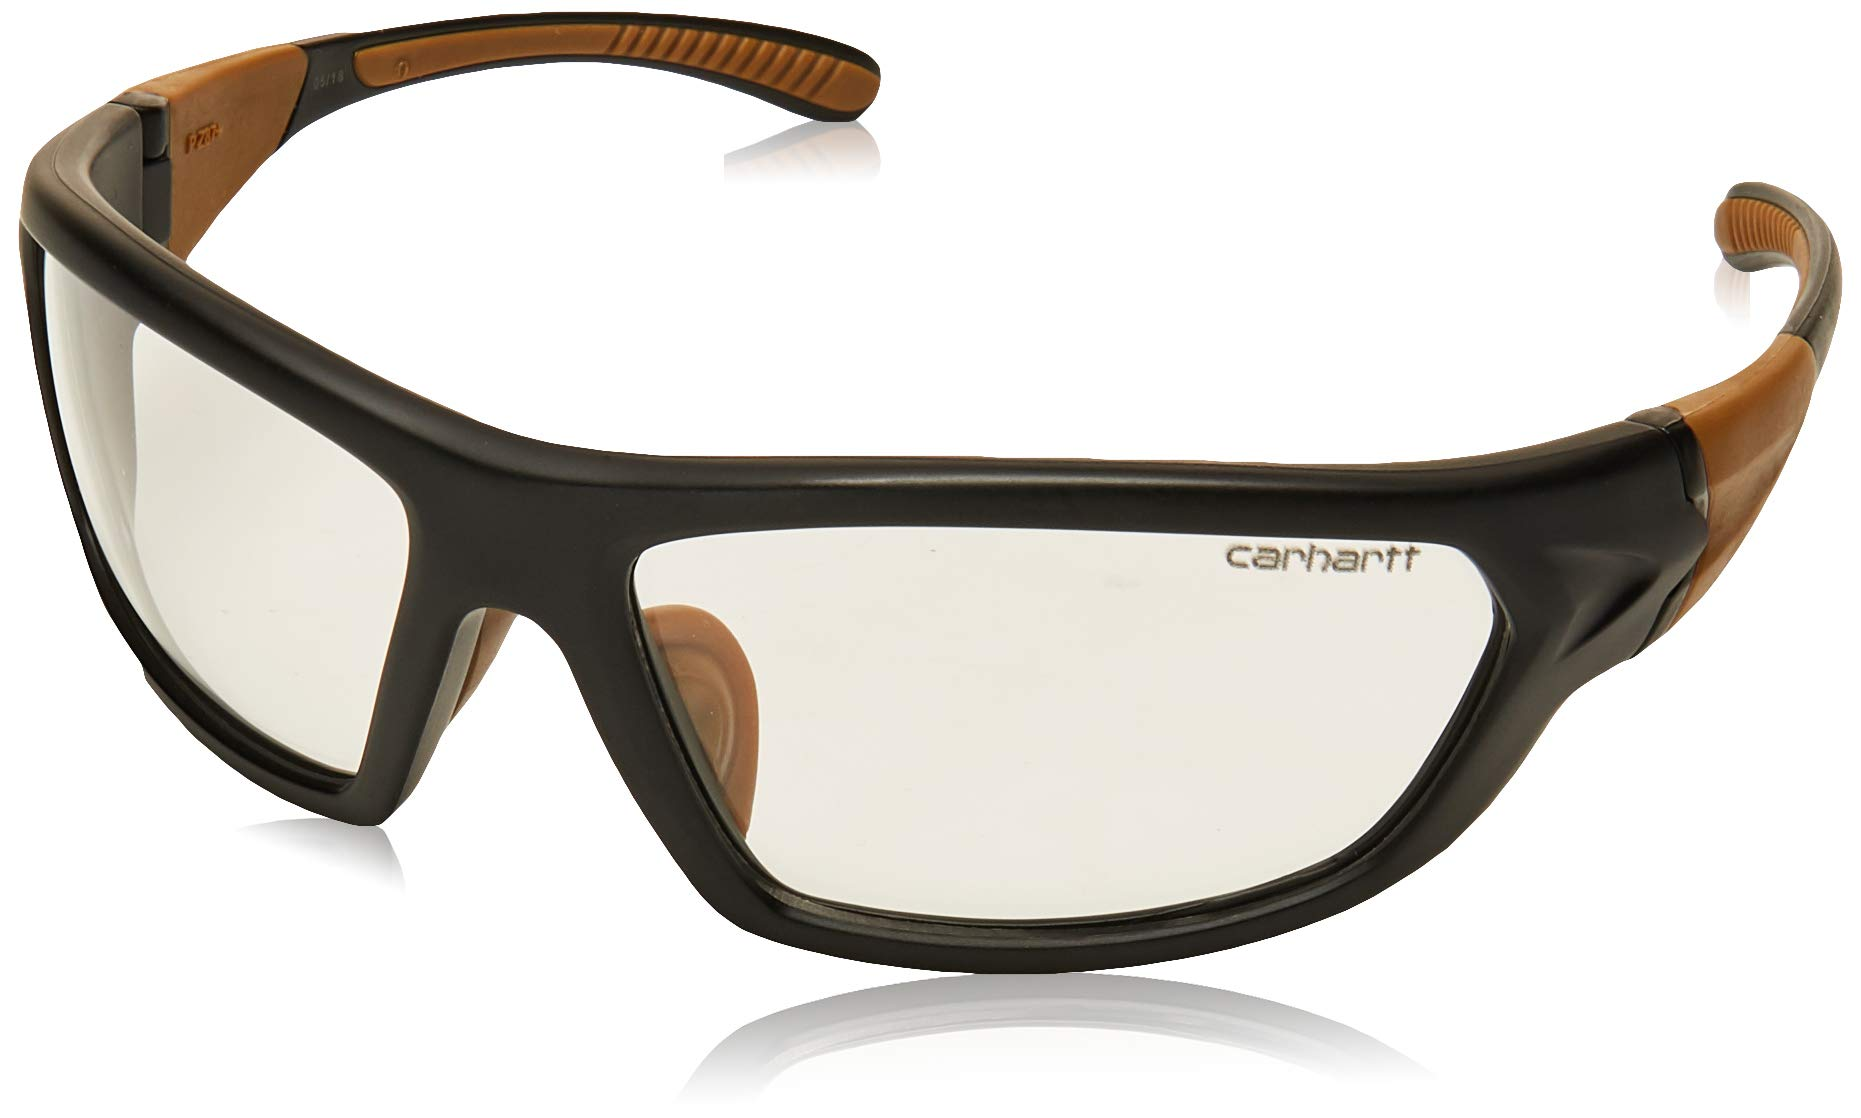 Carhartt Carbondale Safety Glasses with Clear Anti-fog Lens by Carhartt